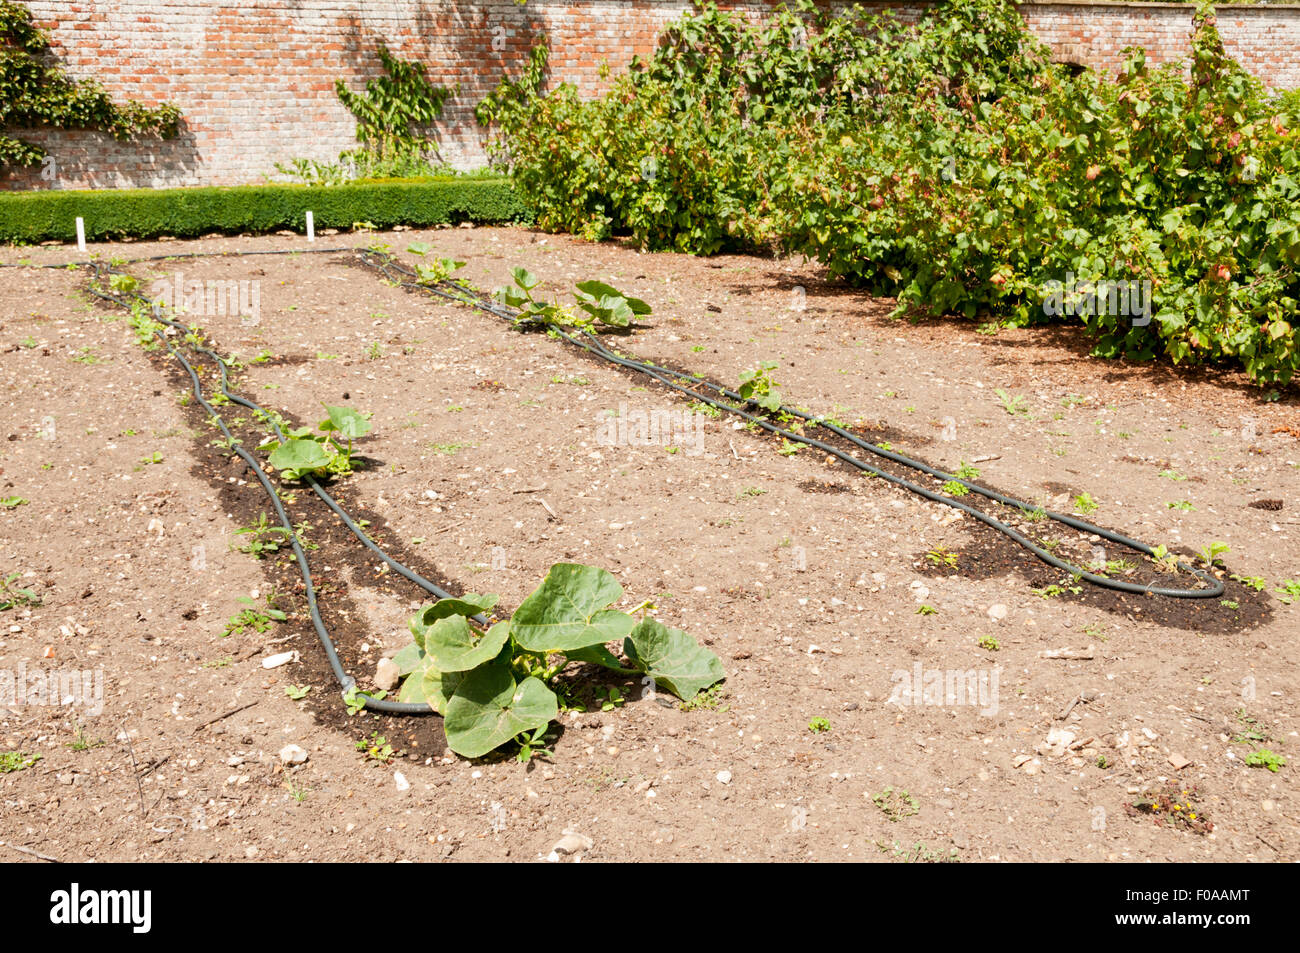 A soaker hose arrangement to water rows of Turk's Cap Pumpkins in a vegetable garden. - Stock Image